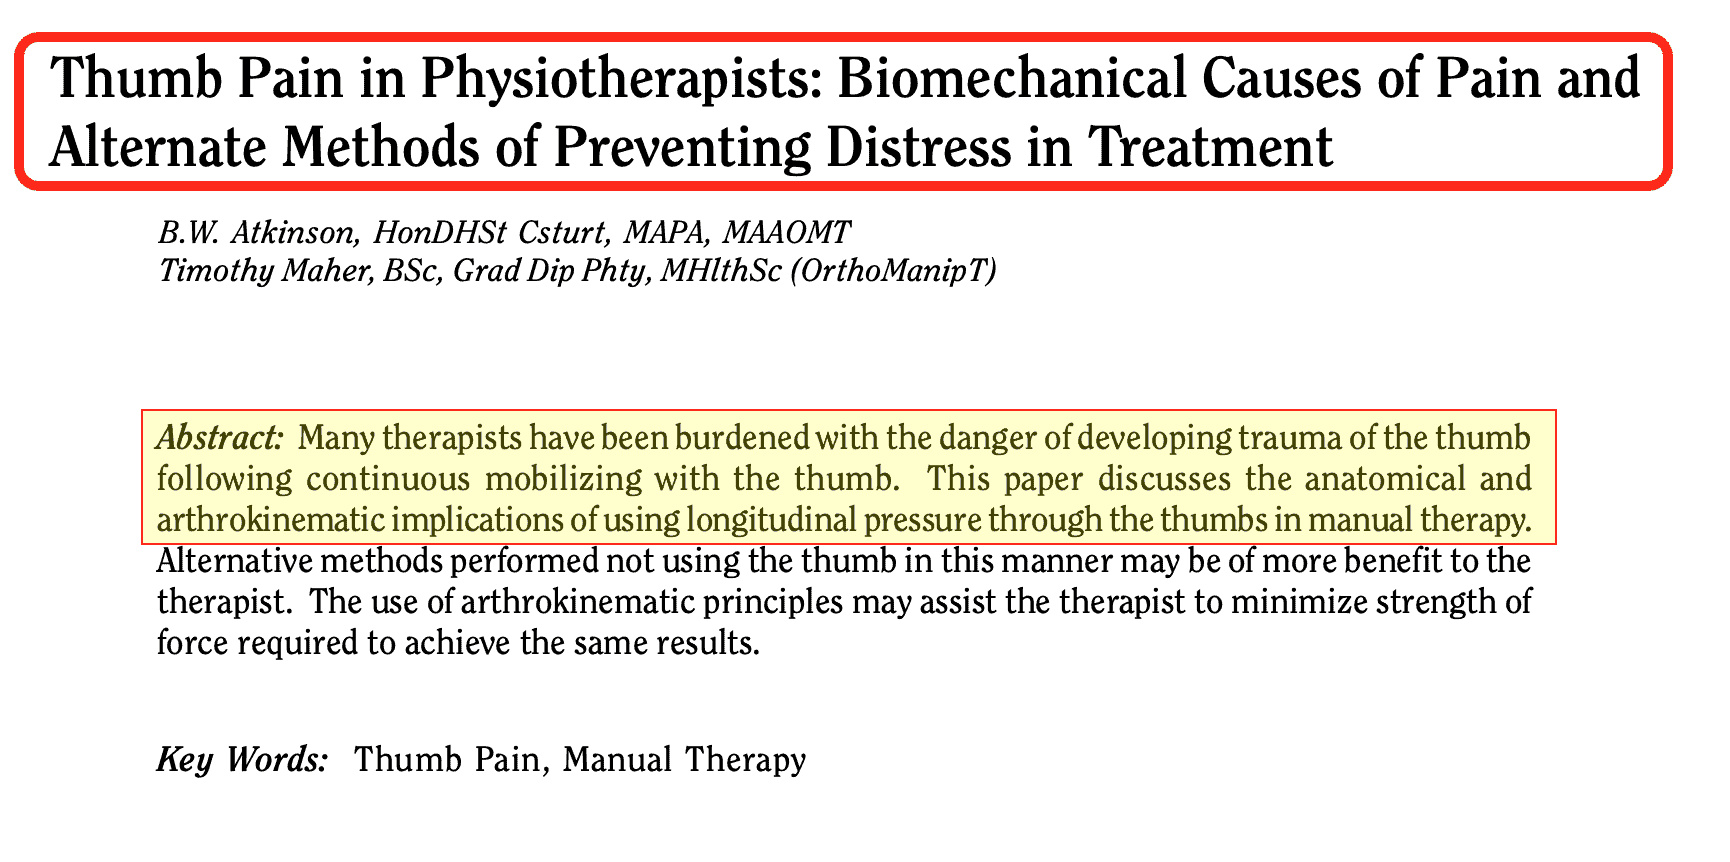 Studio Problemi mano Fisioterapisti Thumb Pain in Physiotherapists - Biomechanical Causes of Pain and Alternate Methods of Preventing Distress in Treatment - The Journal of Manual & Manipulative Therapy 2004